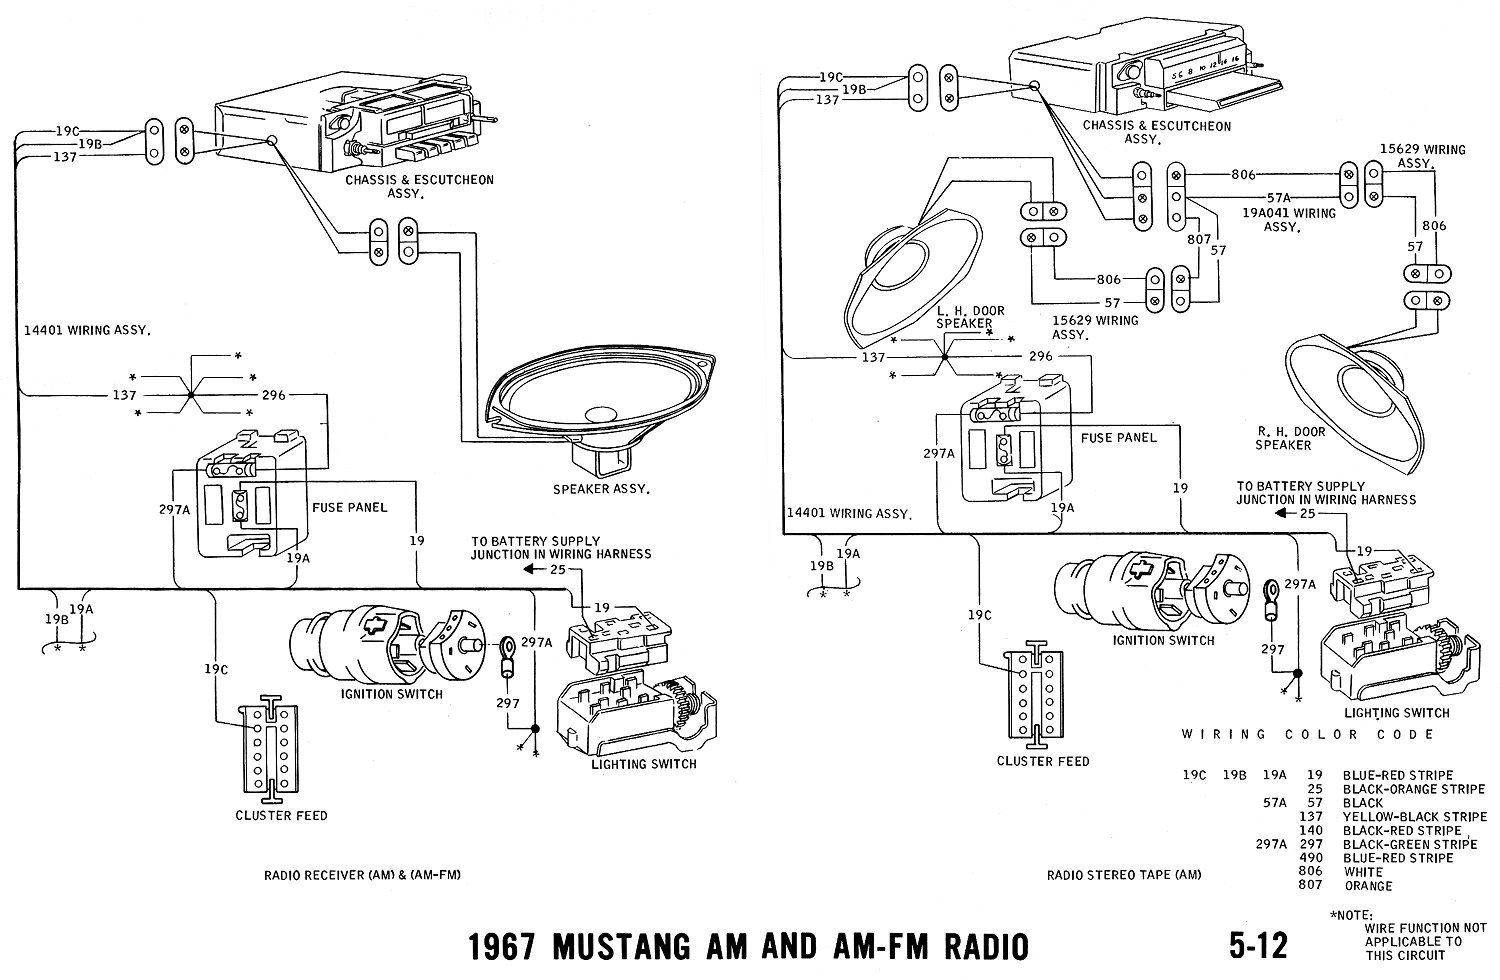 1965 Mustang Headlight Wiring, 1965, Free Engine Image For